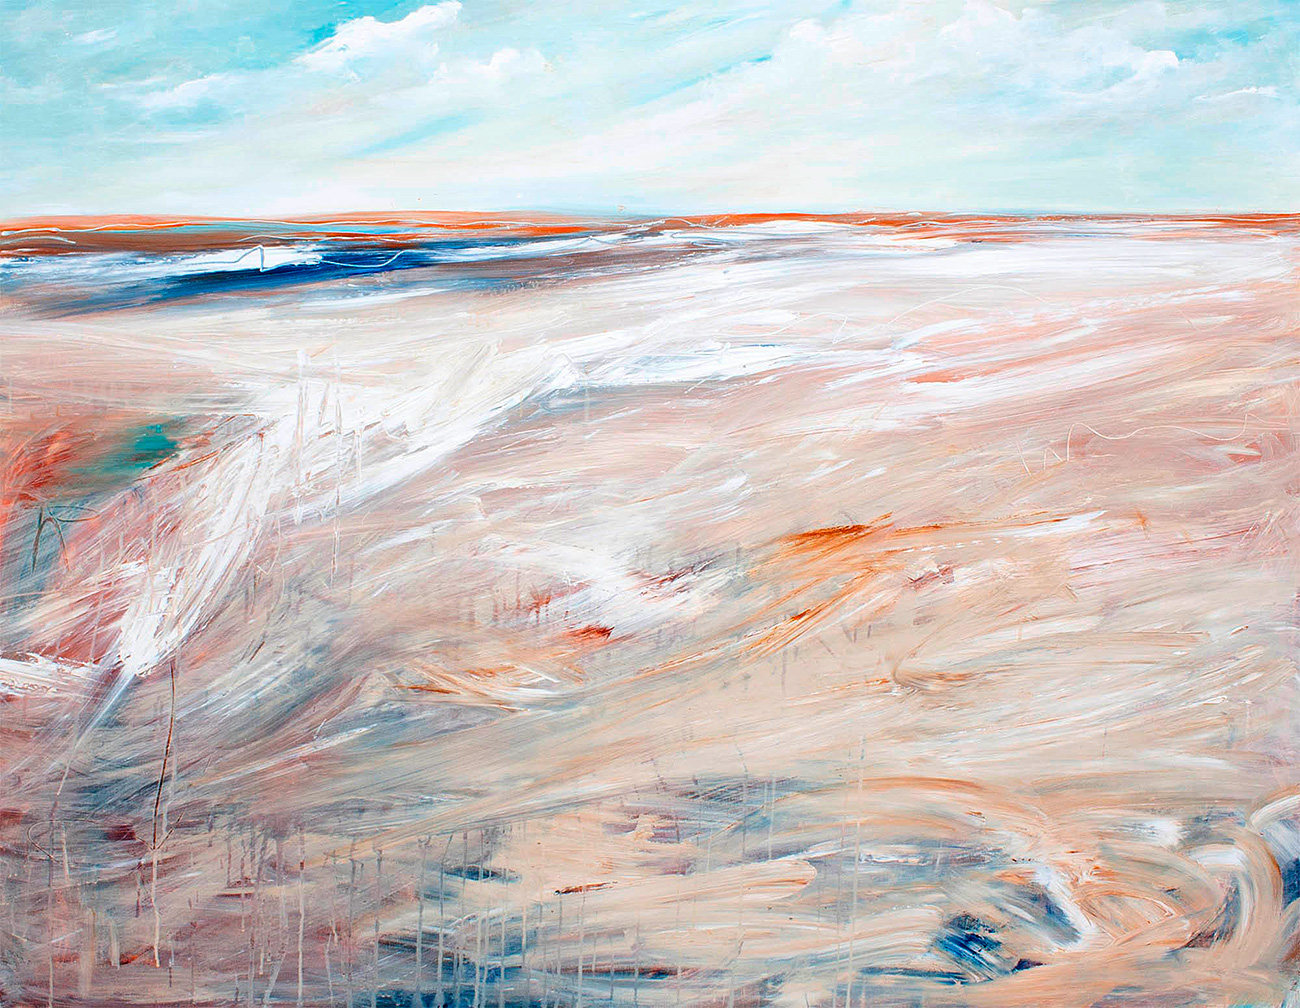 Tania Chanter - 'Wandering Tide'